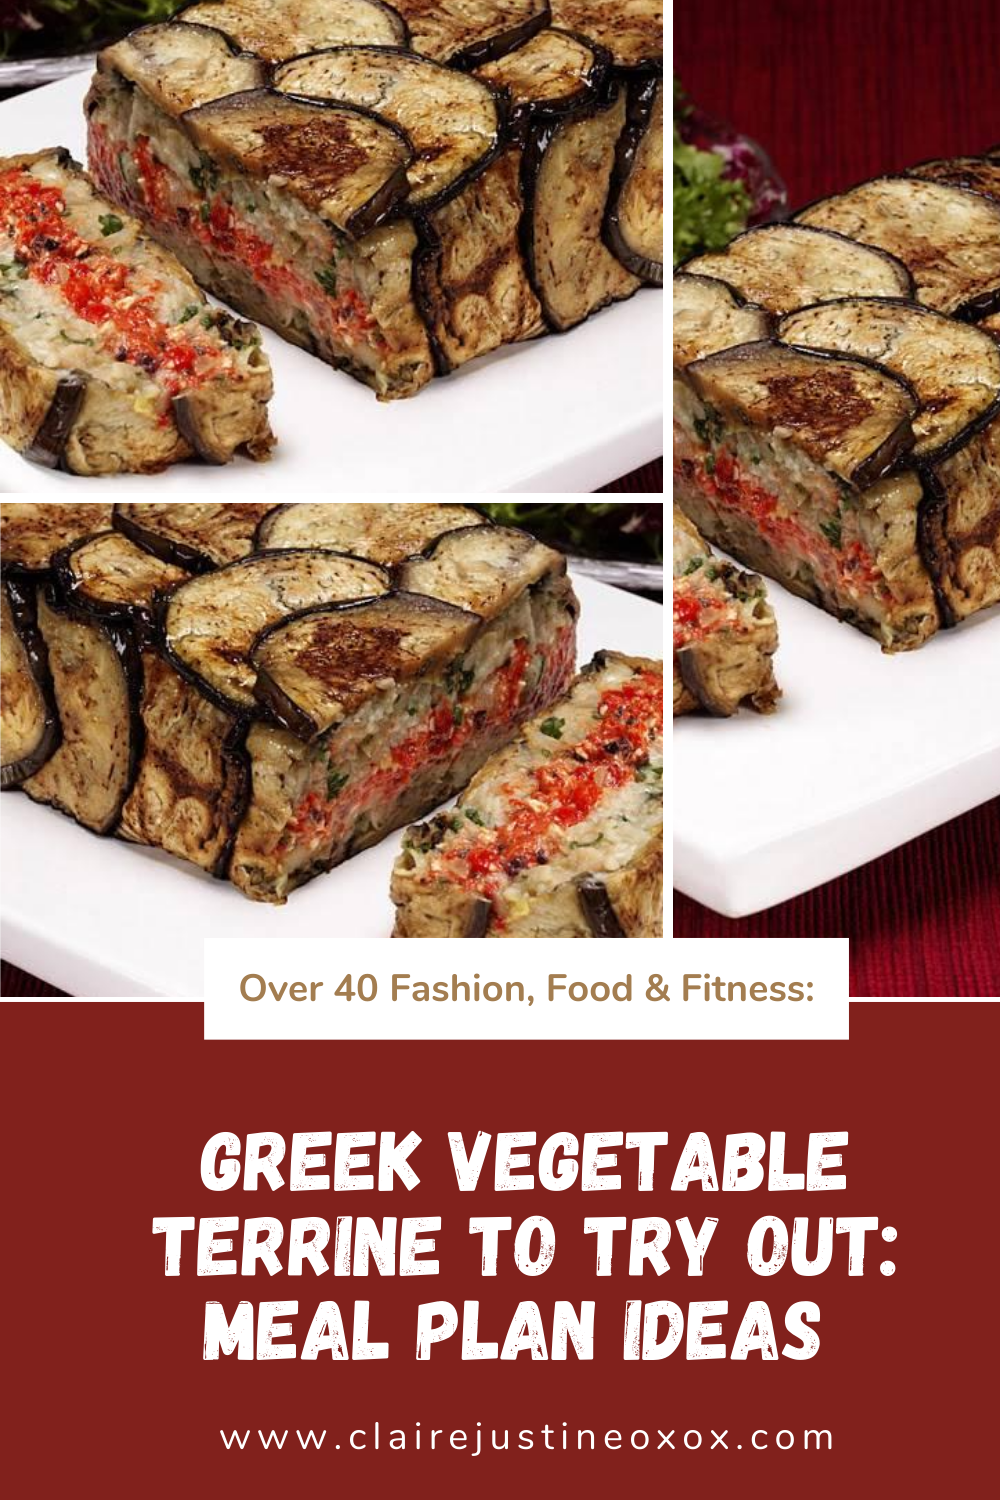 Greek Vegetable Terrine To Try Out: Meal Plan Ideas